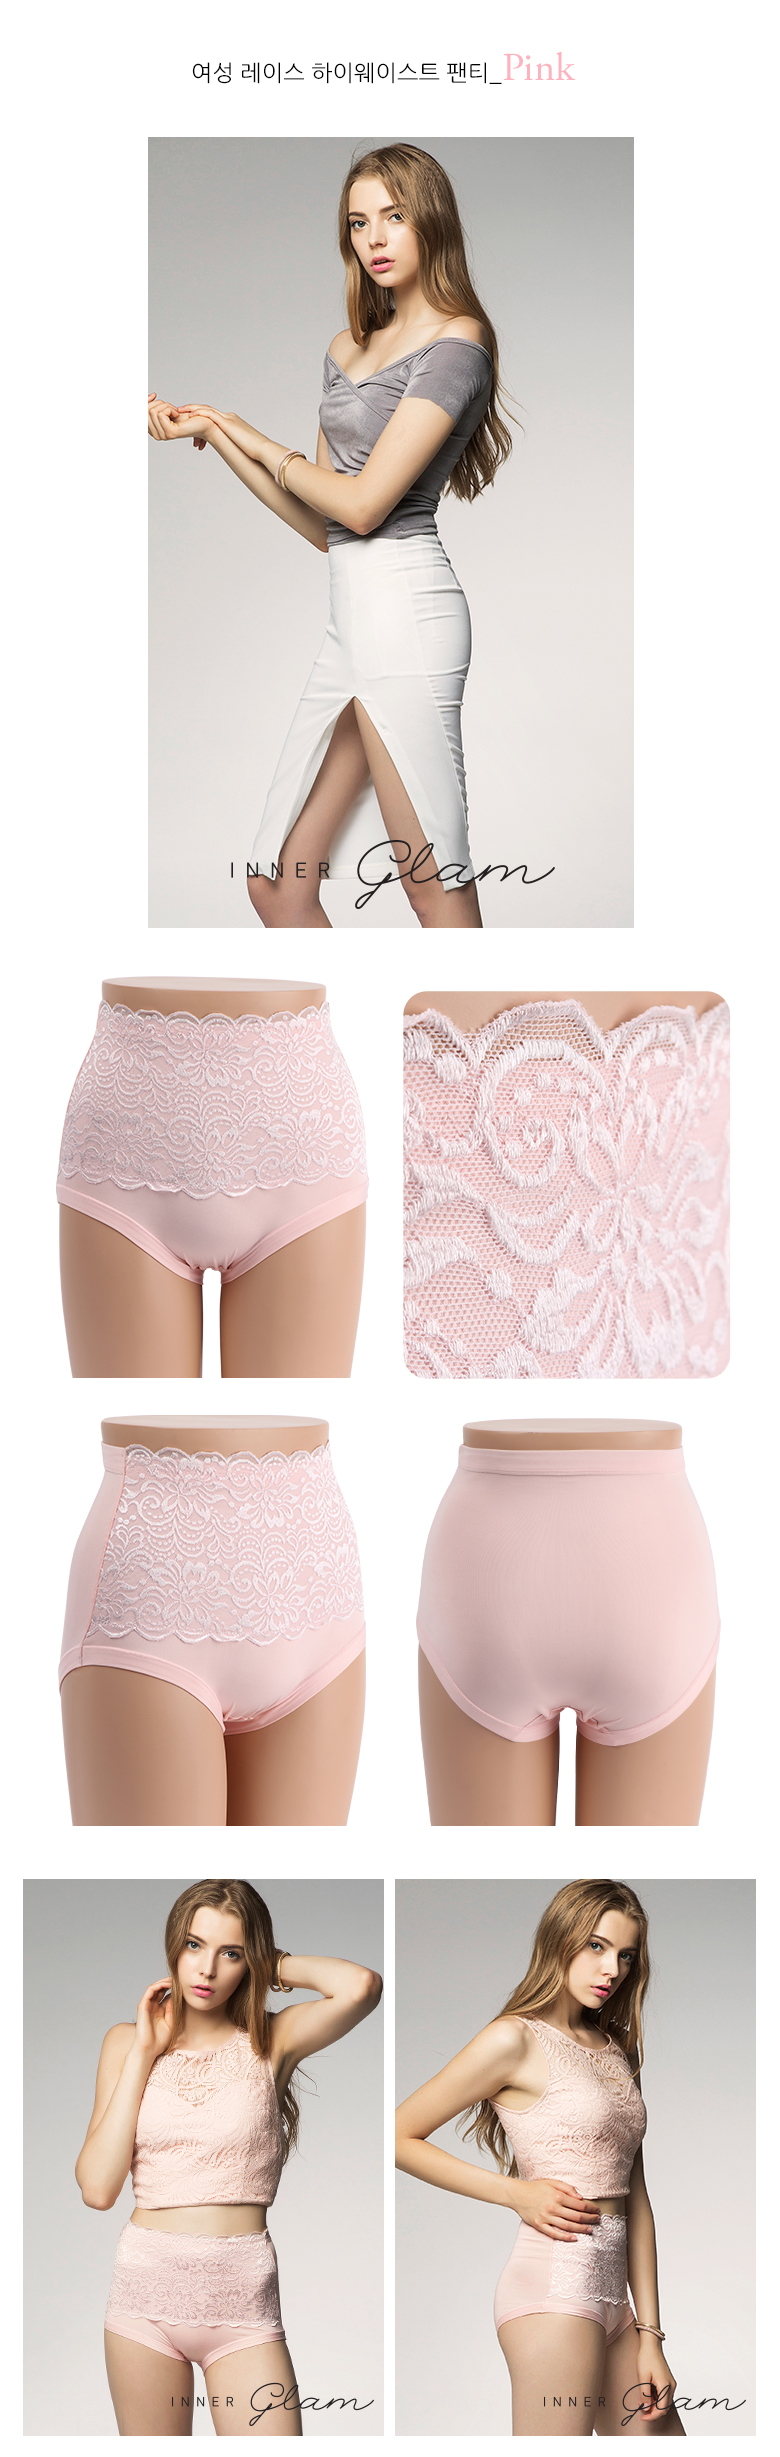 [ innerglam ] Women high waist lace panties 04